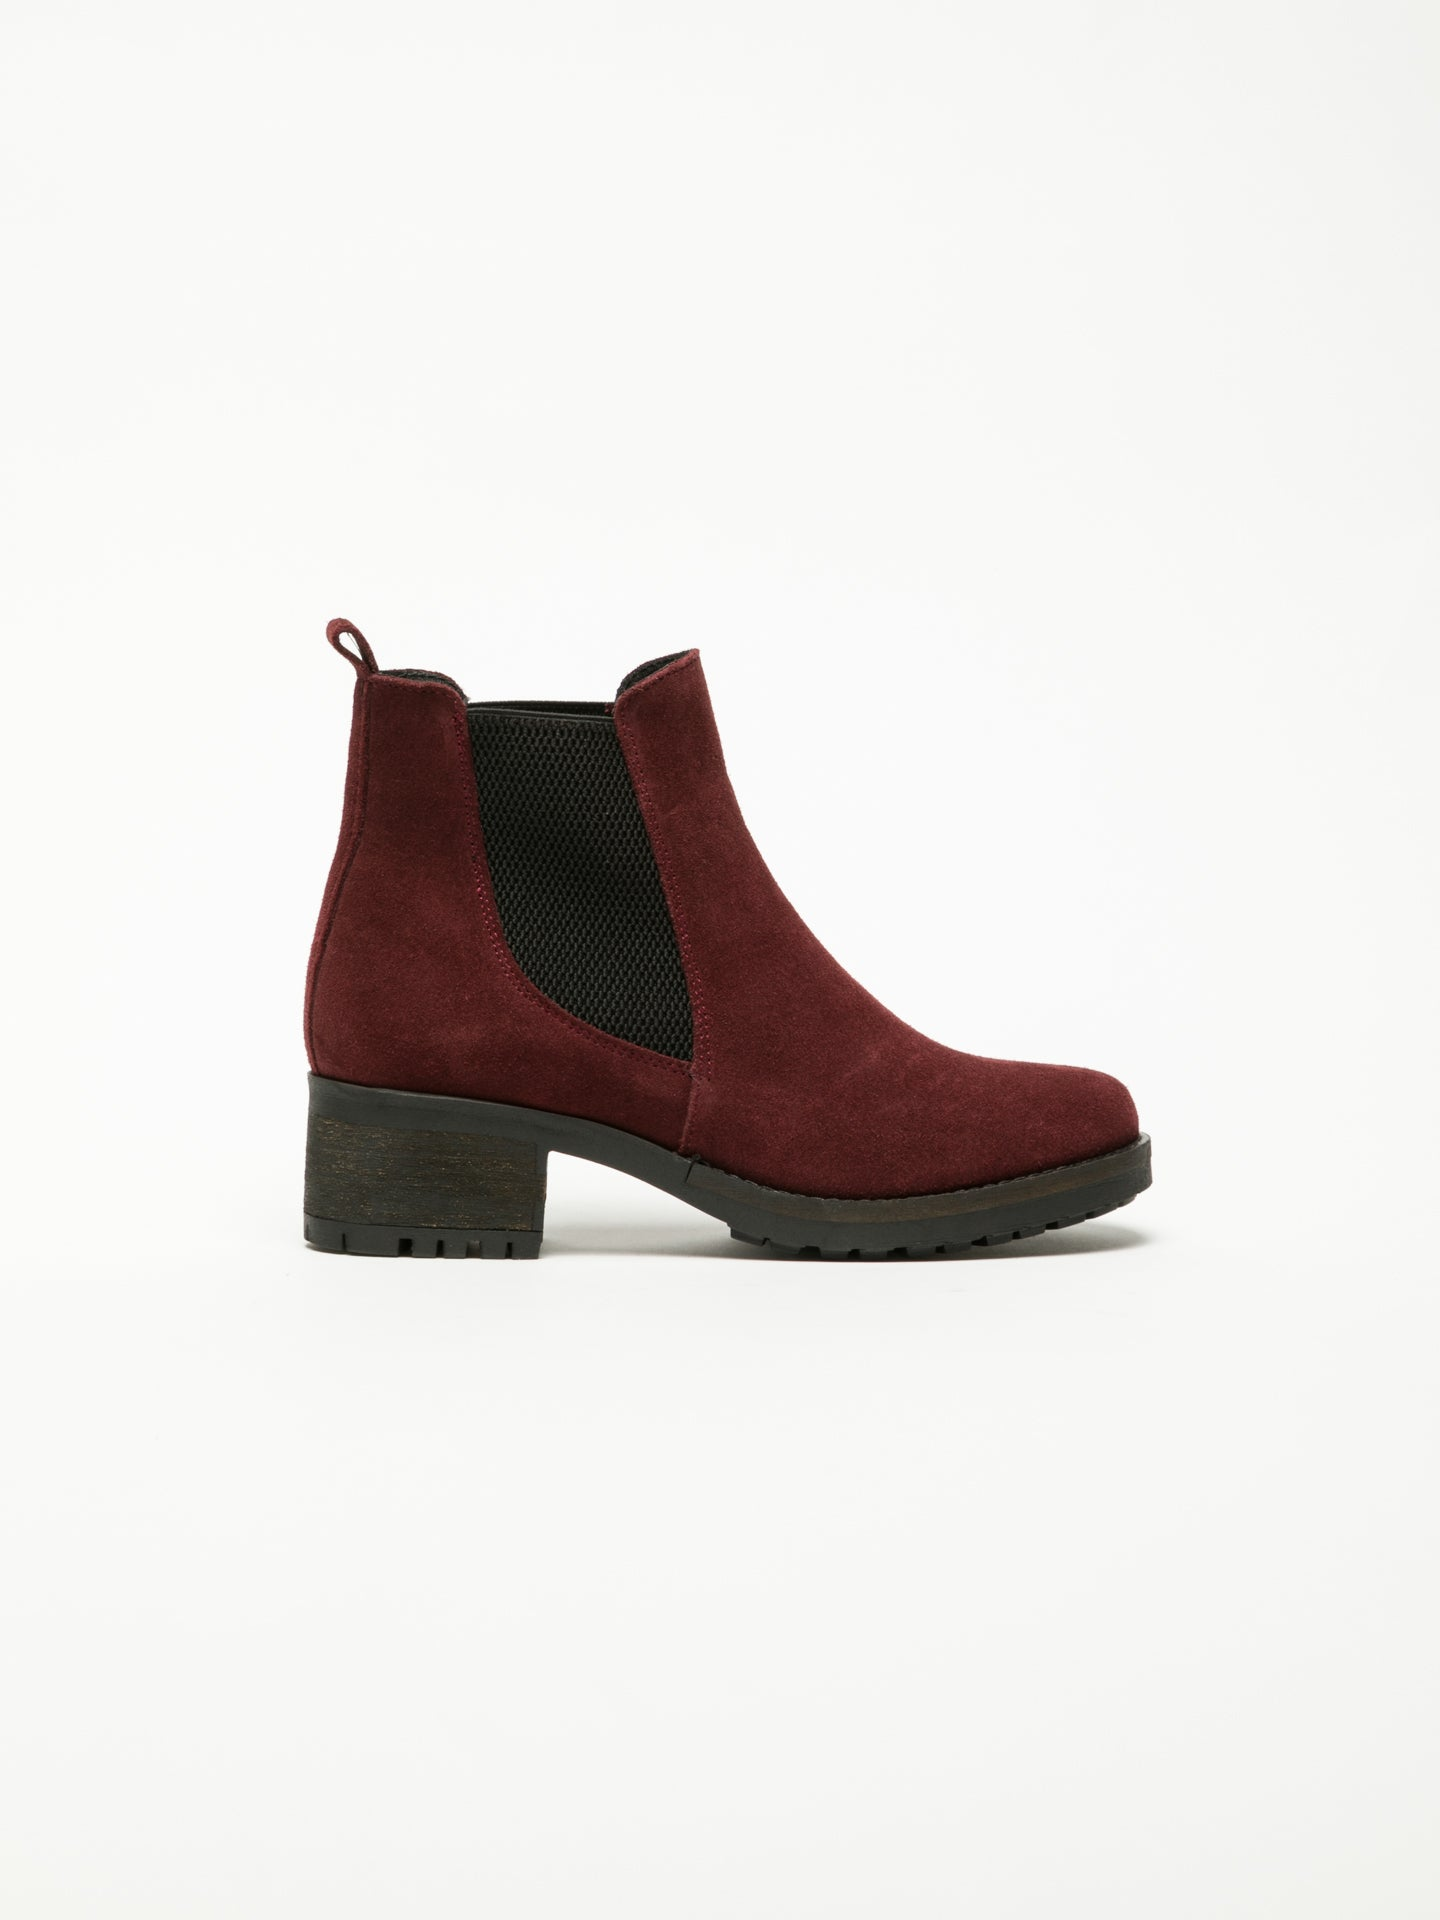 Foreva DarkRed Chelsea Ankle Boots